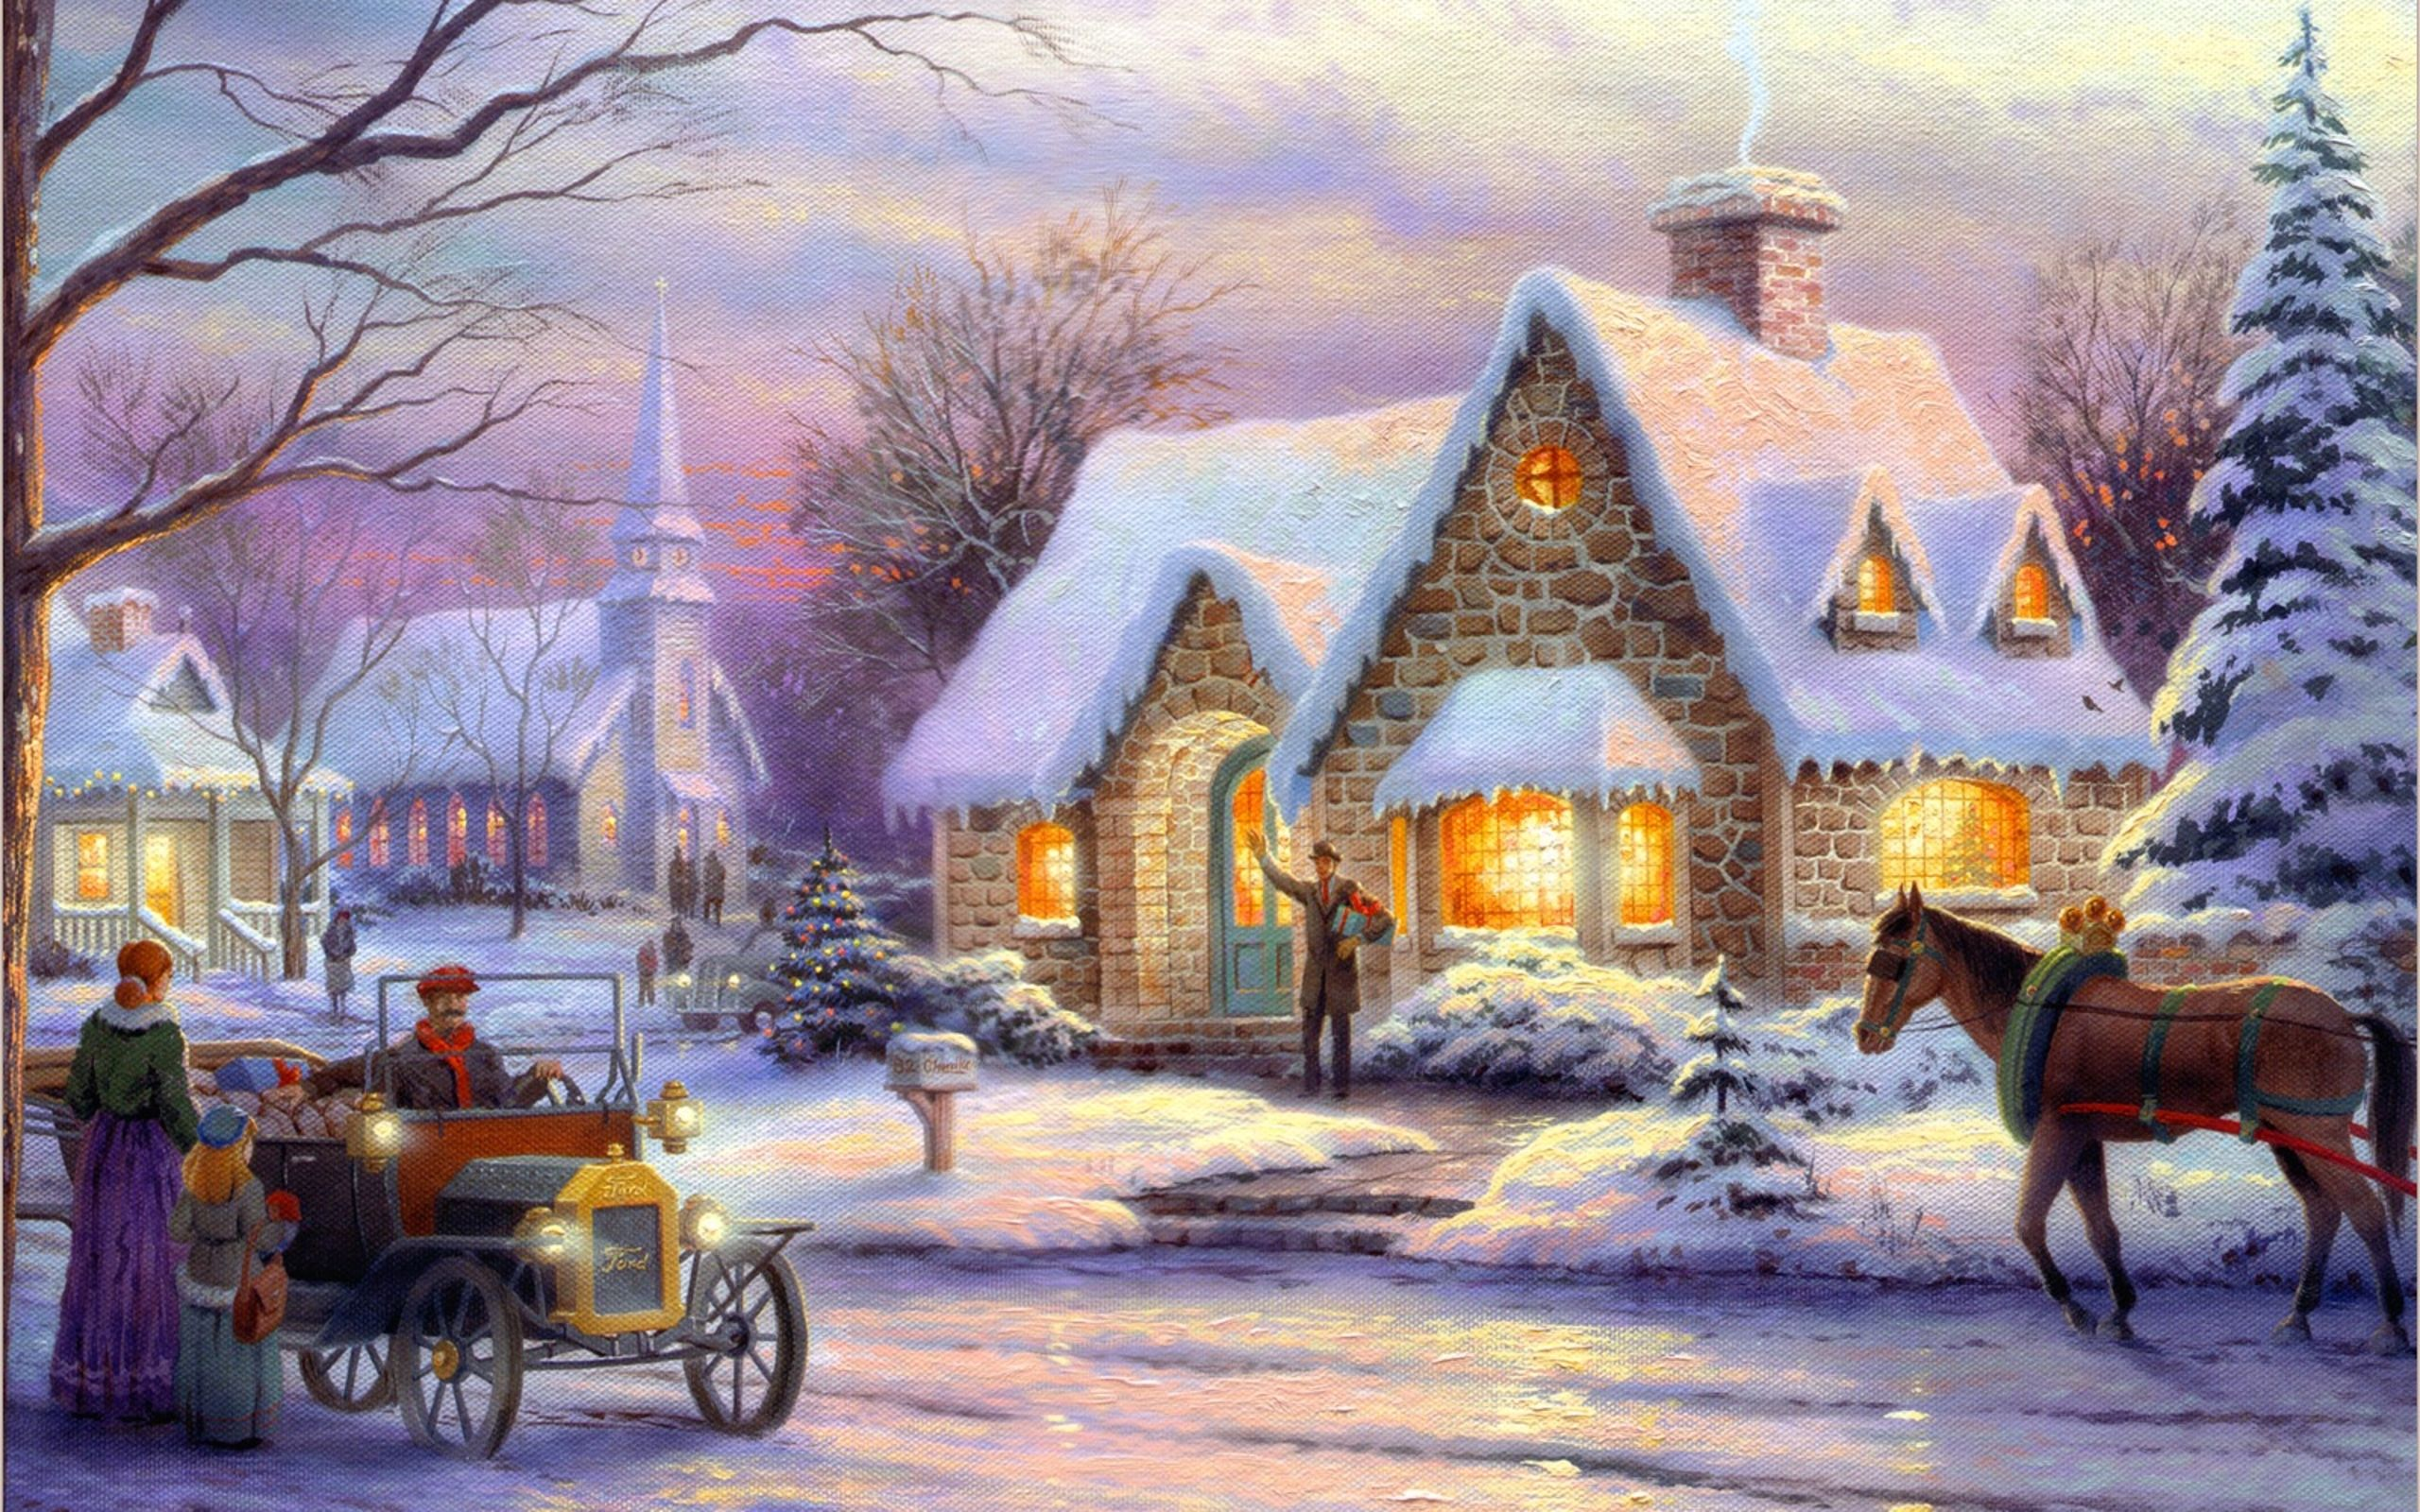 christmas paintings wallpaper thomas kinkade wallpaper memories of christmas art painting winter